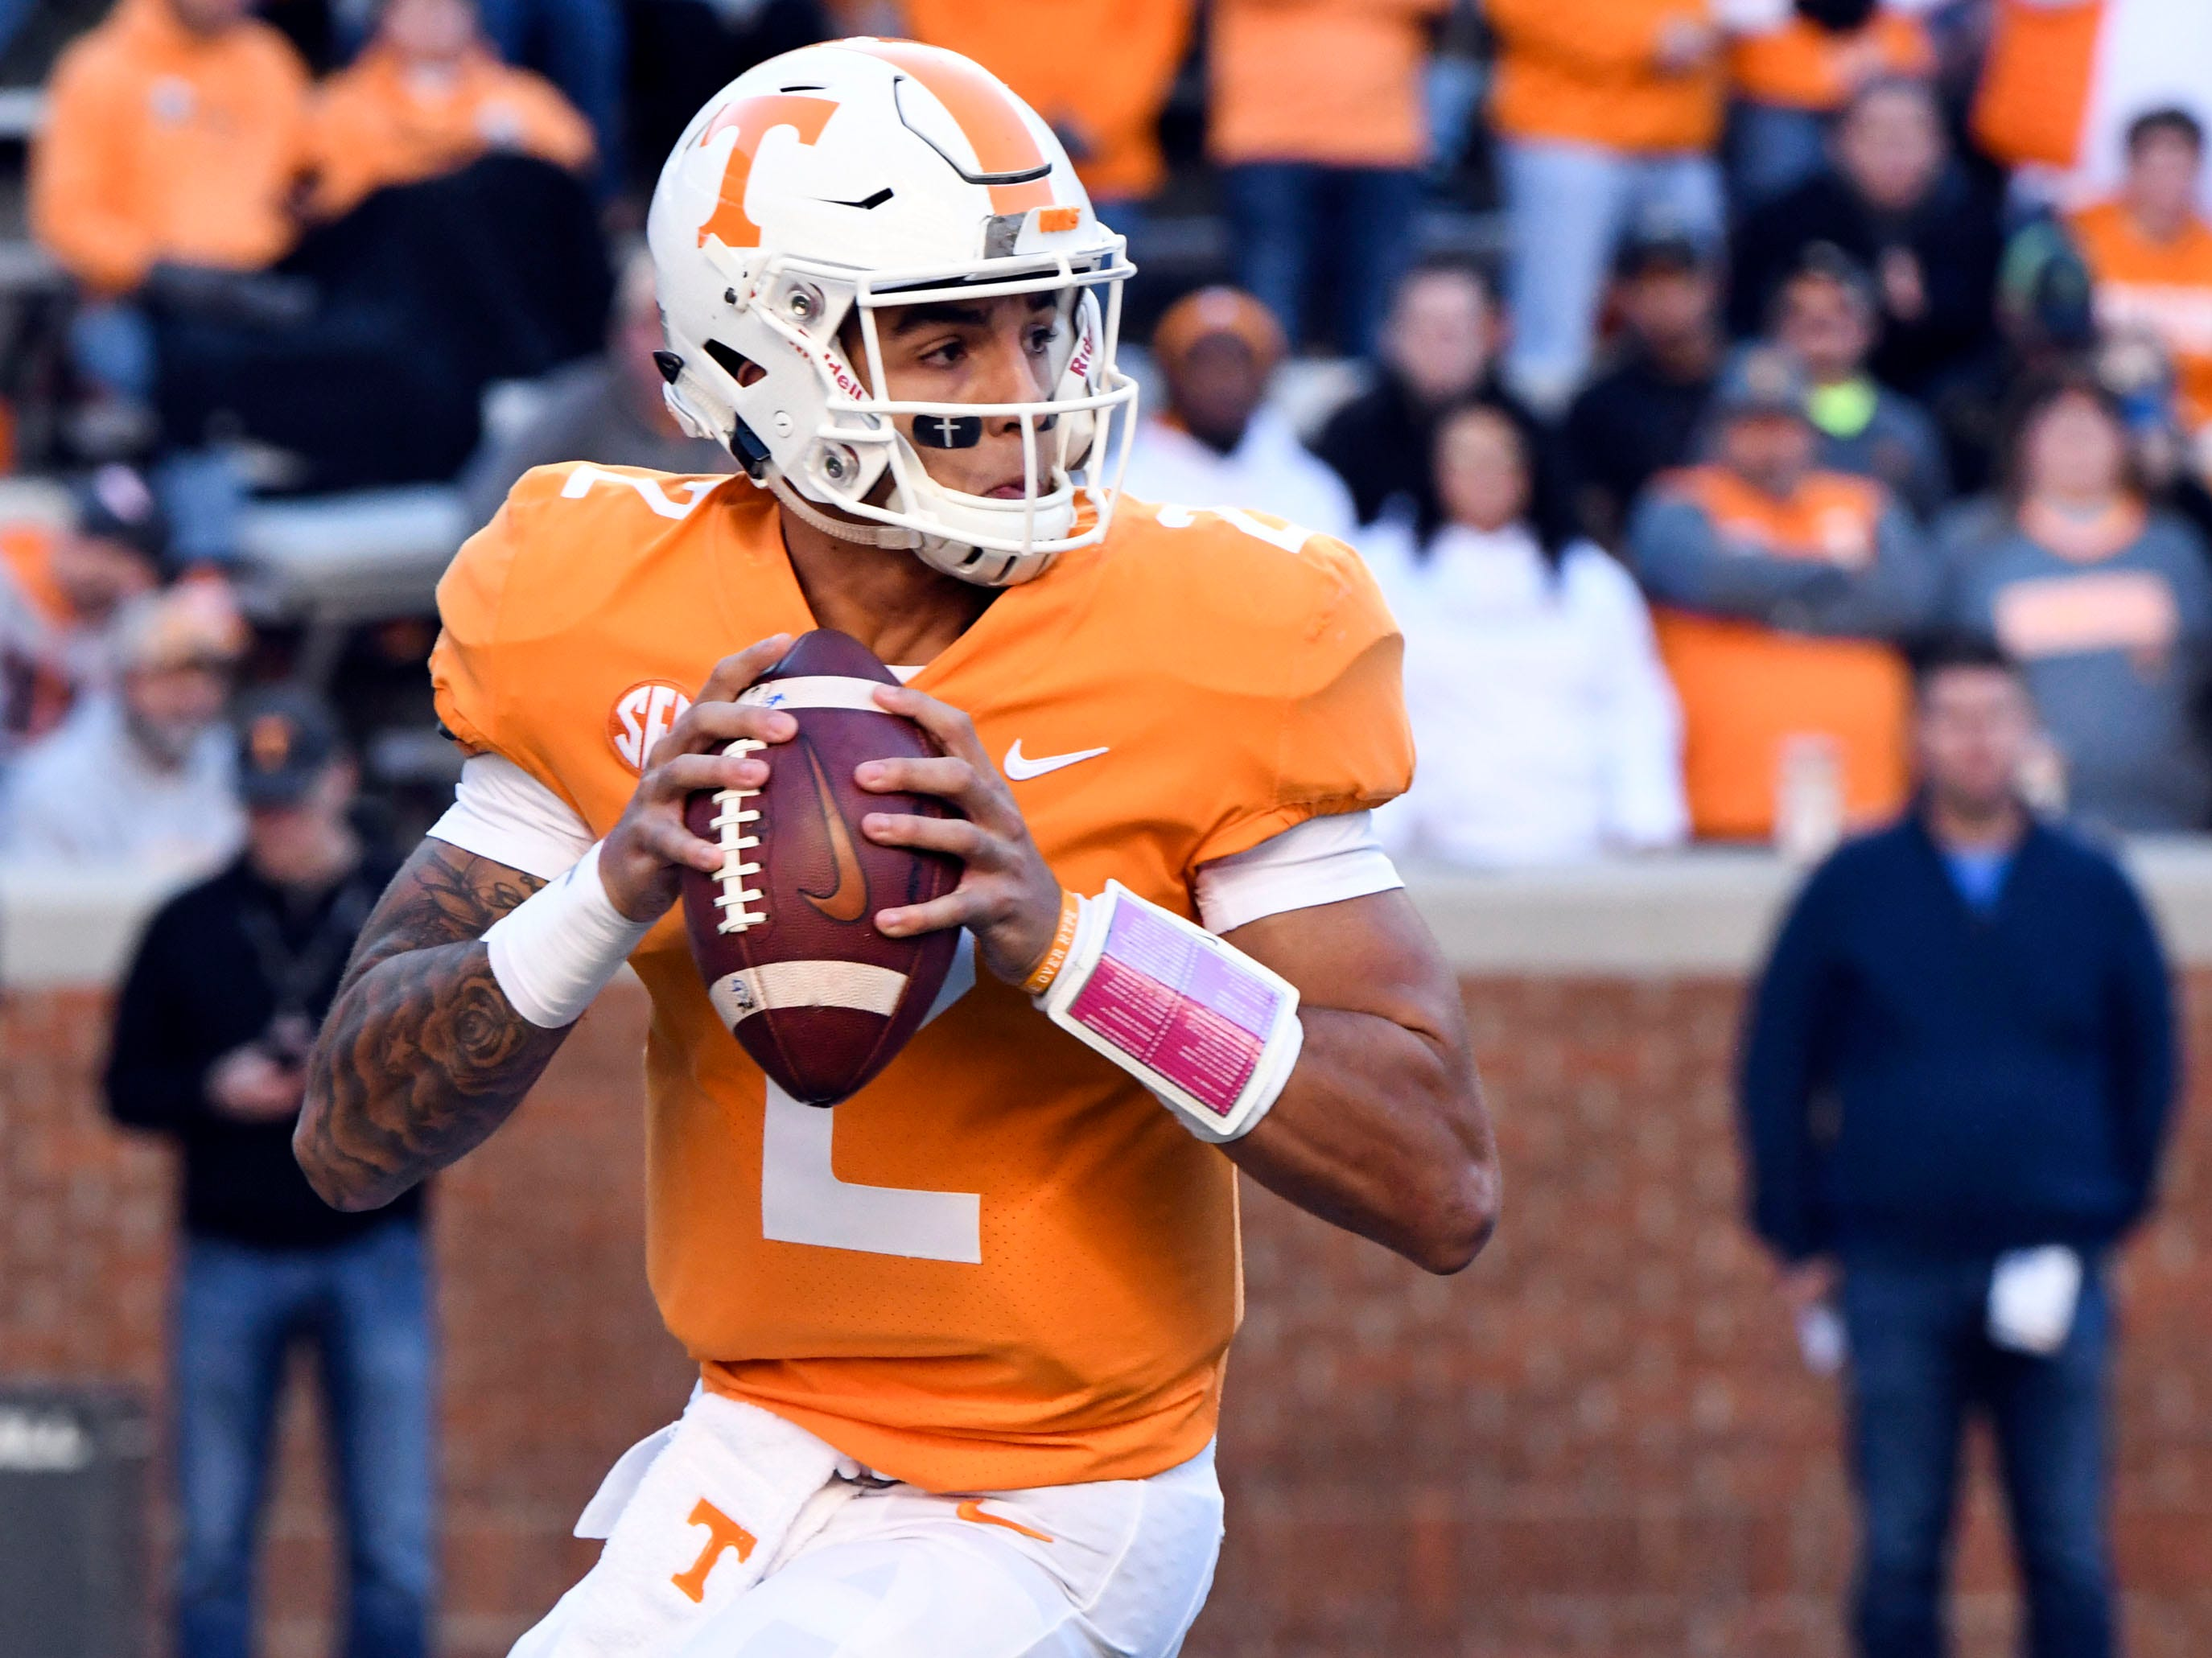 Tennessee quarterback Jarrett Guarantano (2) looks for an open receiver during the Tennessee and Missouri football game on Saturday, November 17, 2018.